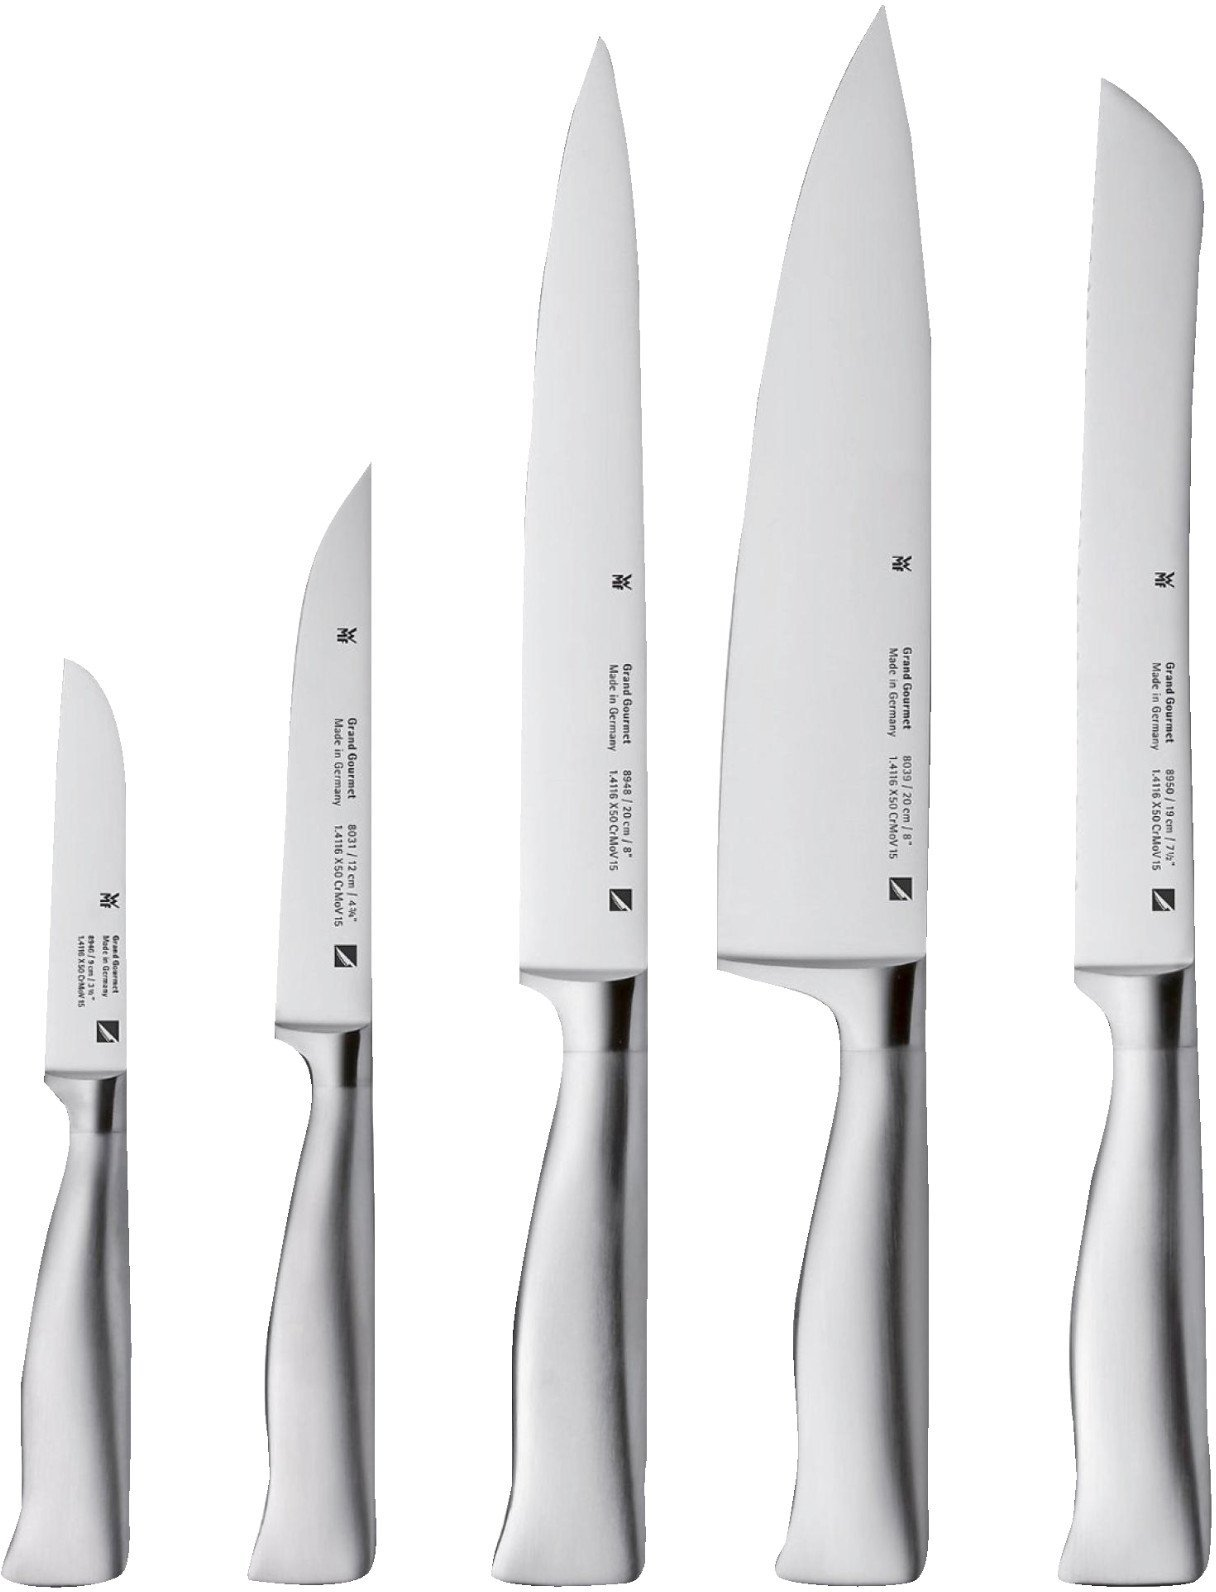 Zwilling Messerblock Twin Chef 8-teilig Wmf Grand Gourmet Messerset 5 Tlg